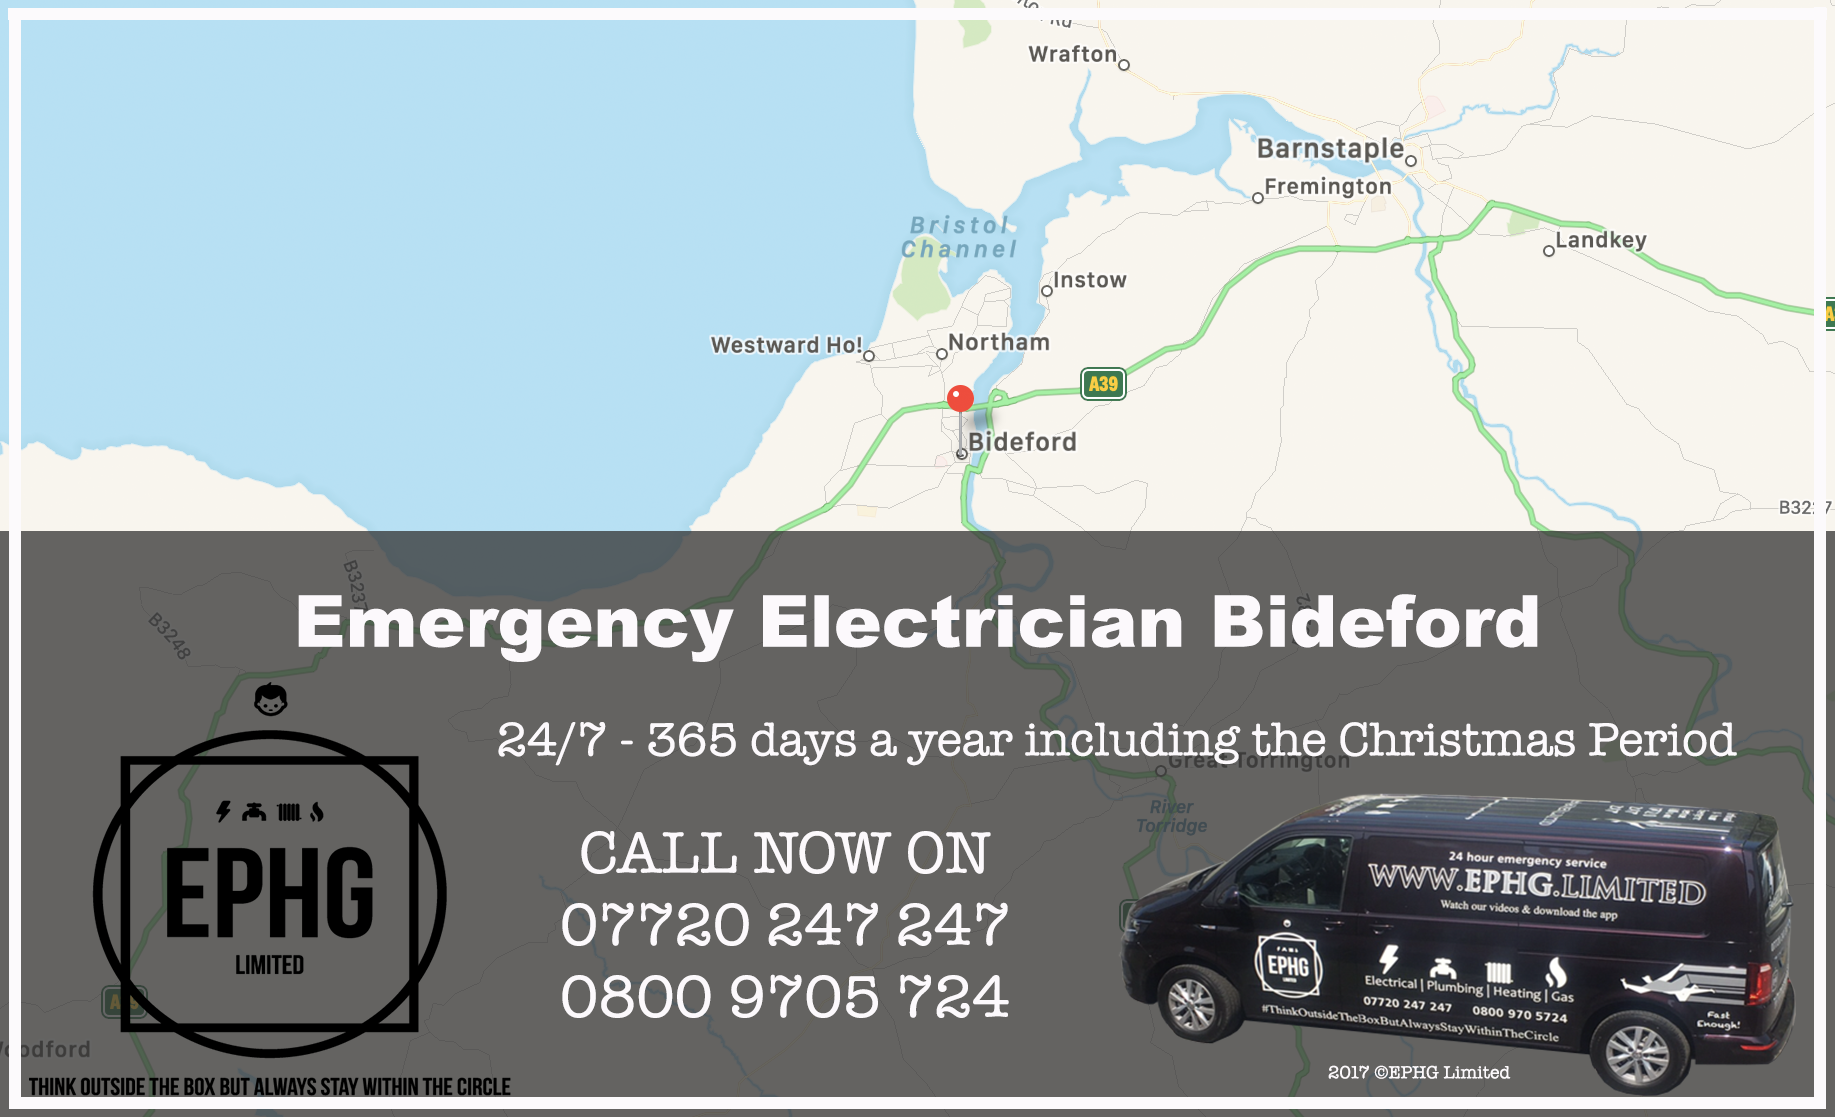 Emergency Electrician Bideford